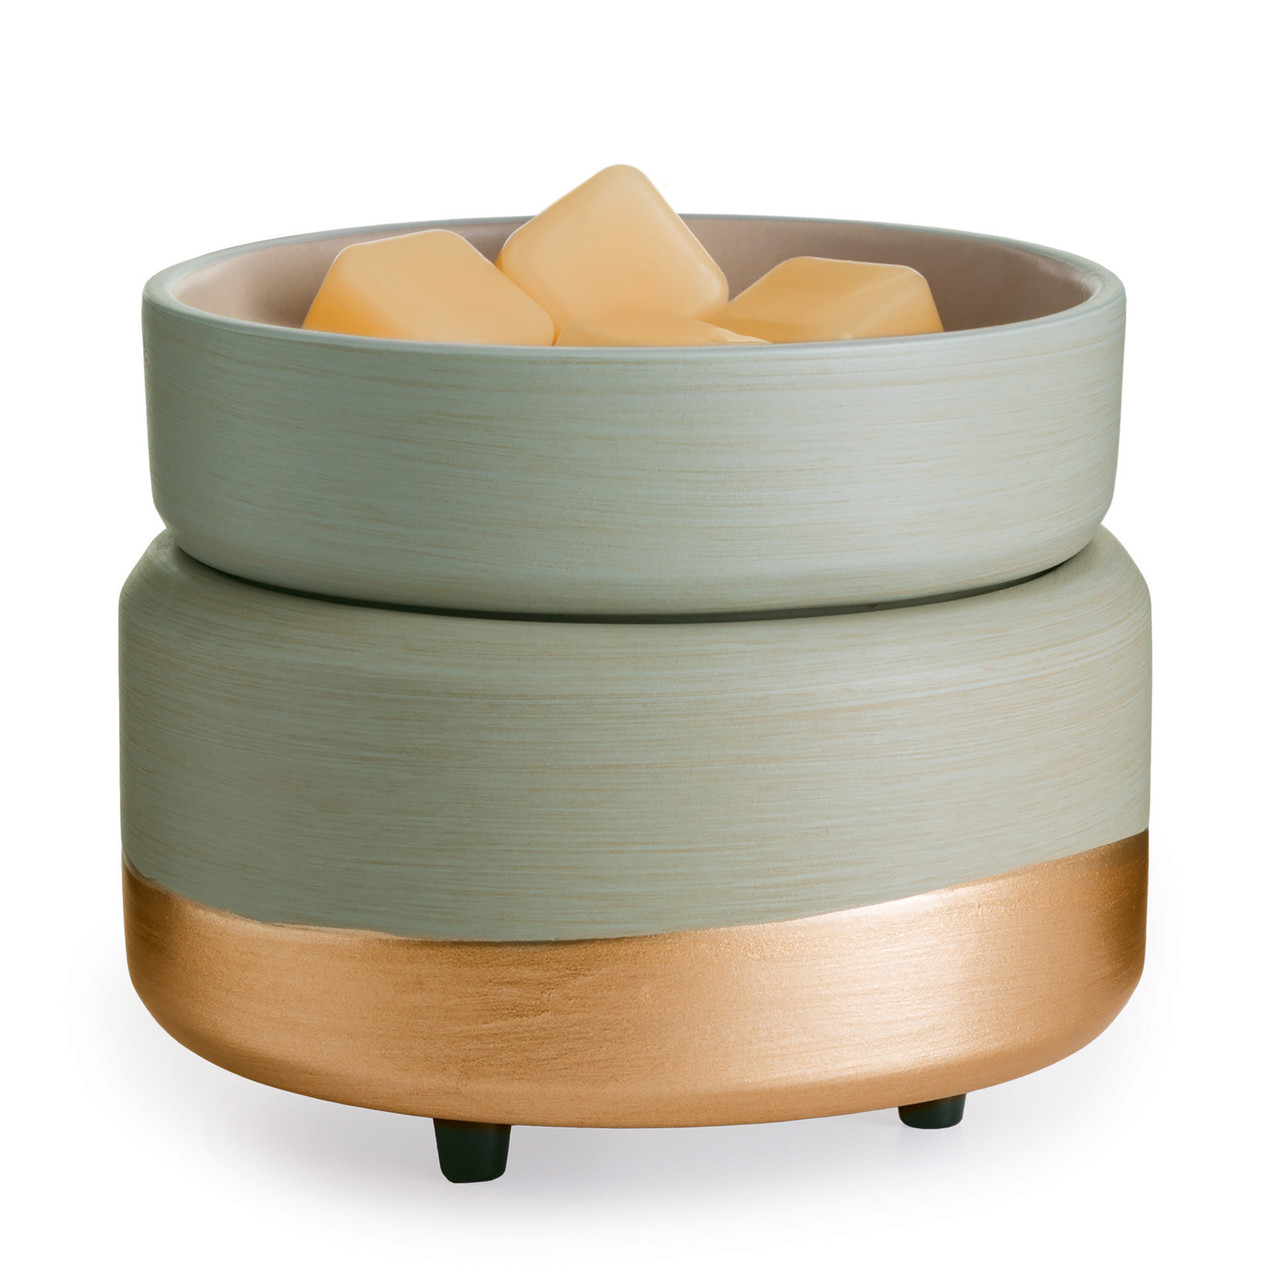 Wax Melter Midas 2 In 1 Classic Terra Vela Others will have a small switch the melter on so that it will start heating up your wax. wax melter midas 2 in 1 classic